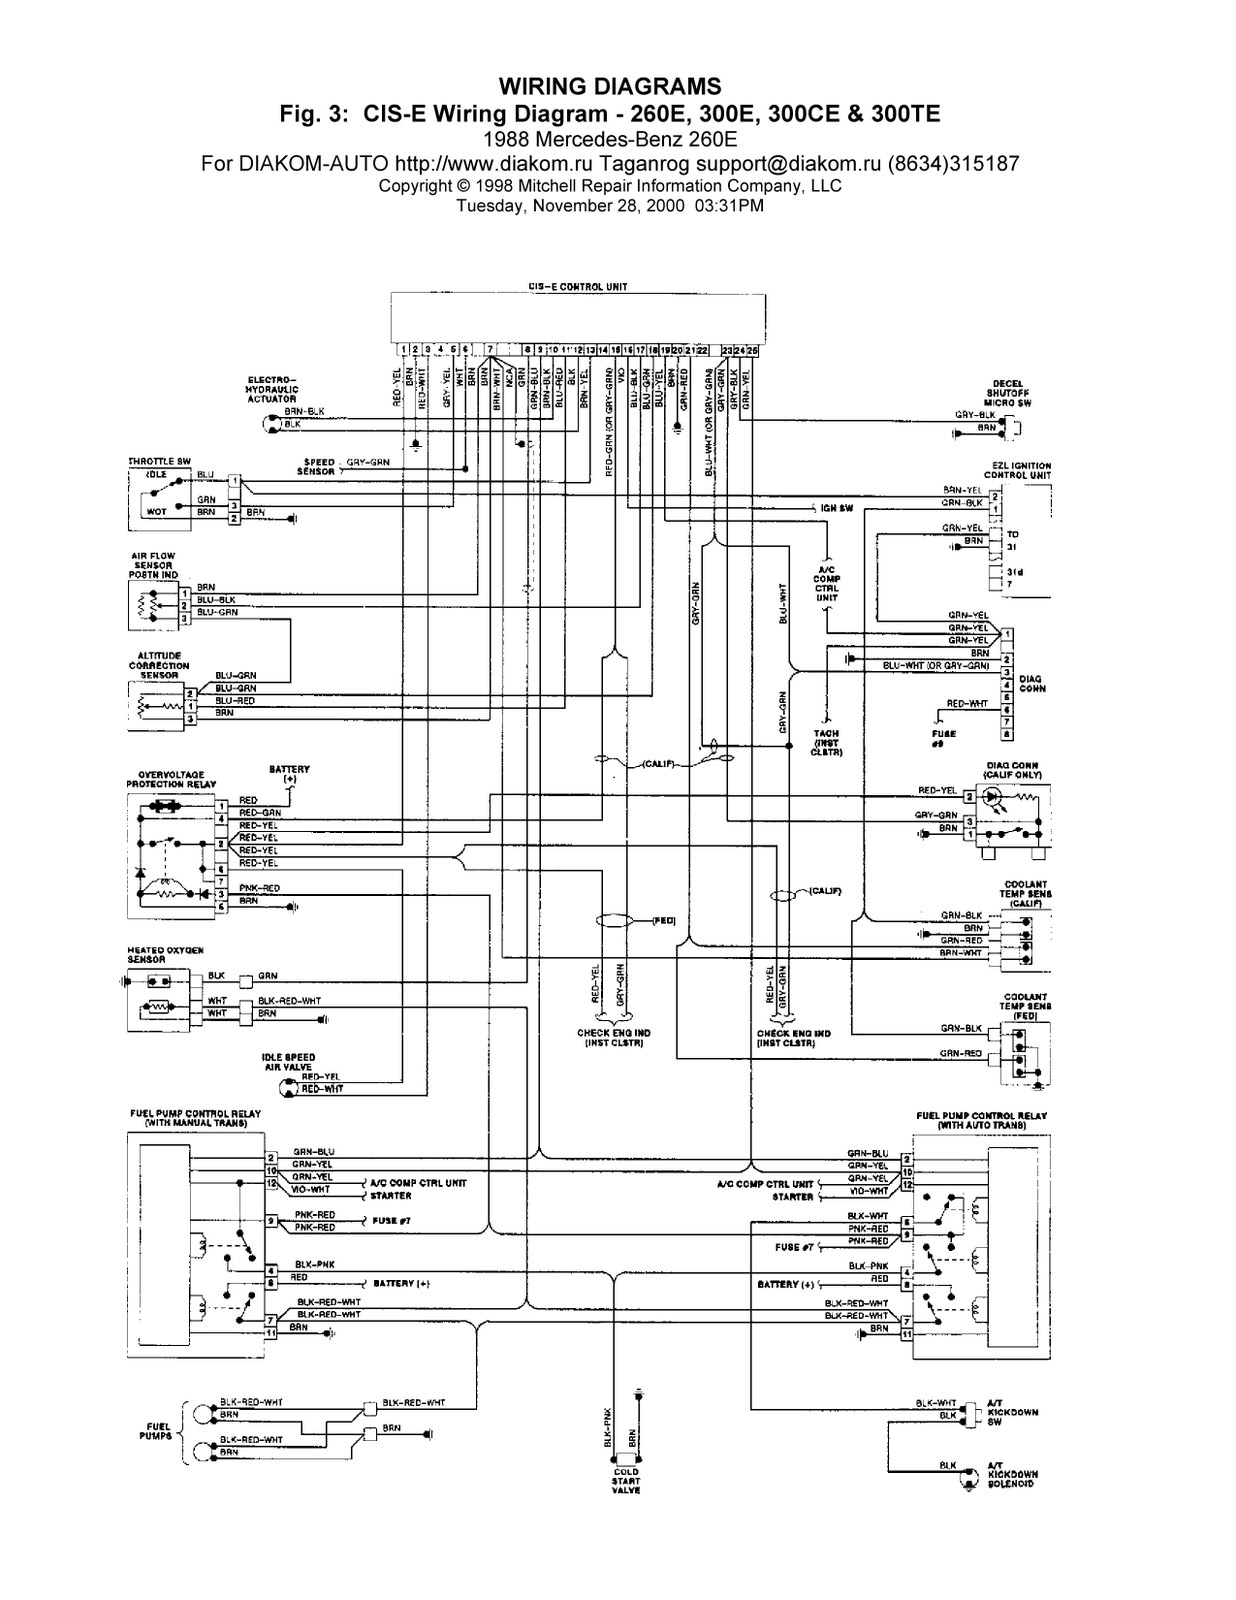 Mercedes Benz Wiring Diagrams Data Diagram Solutions Schematics Change Your Idea With 1985